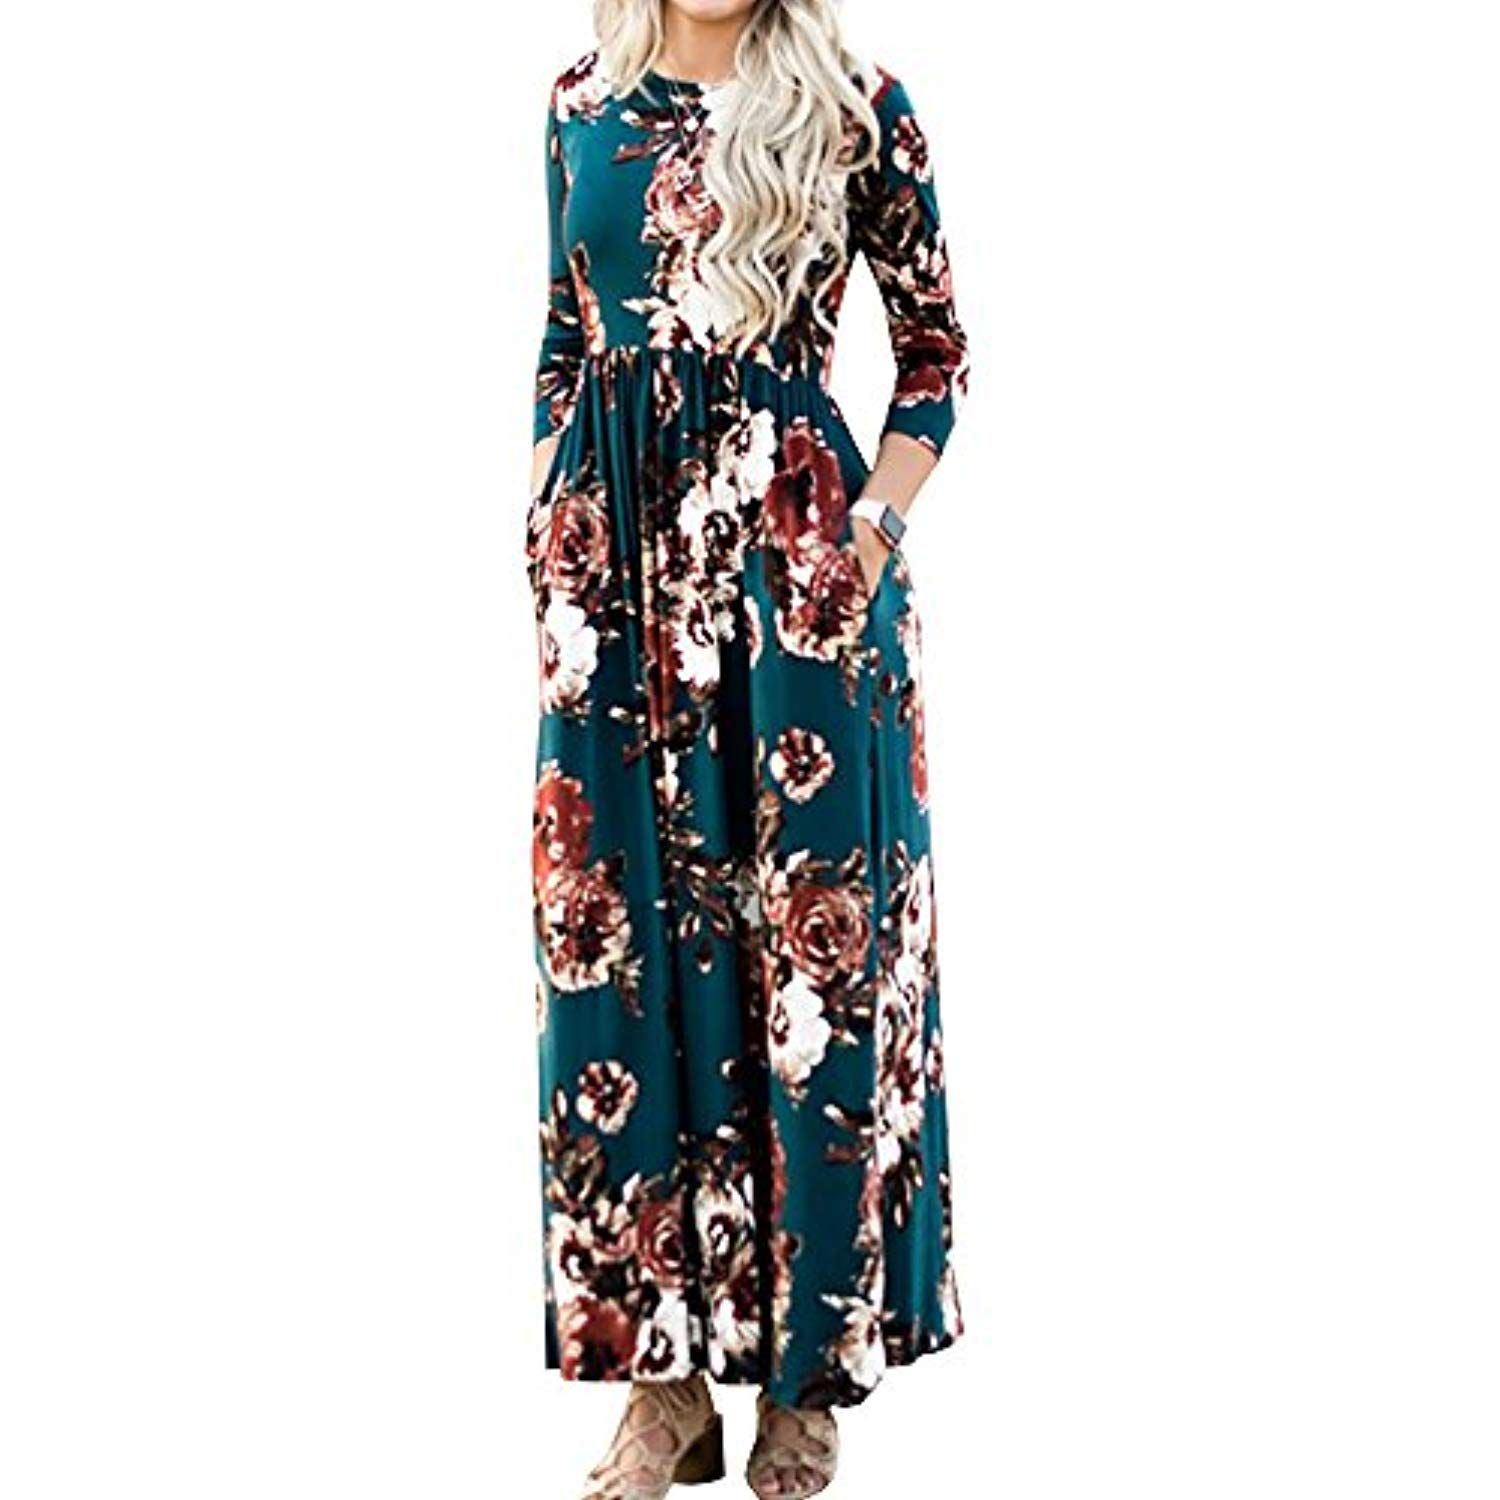 Womens Floral Maxi Dress 3 4 Sleeve Empire Waist Floor Length Boho Pleated Casual Women Maxi Dresses Summer Evening Gowns With Sleeves Womens Floral Maxi Dress [ 1500 x 1500 Pixel ]